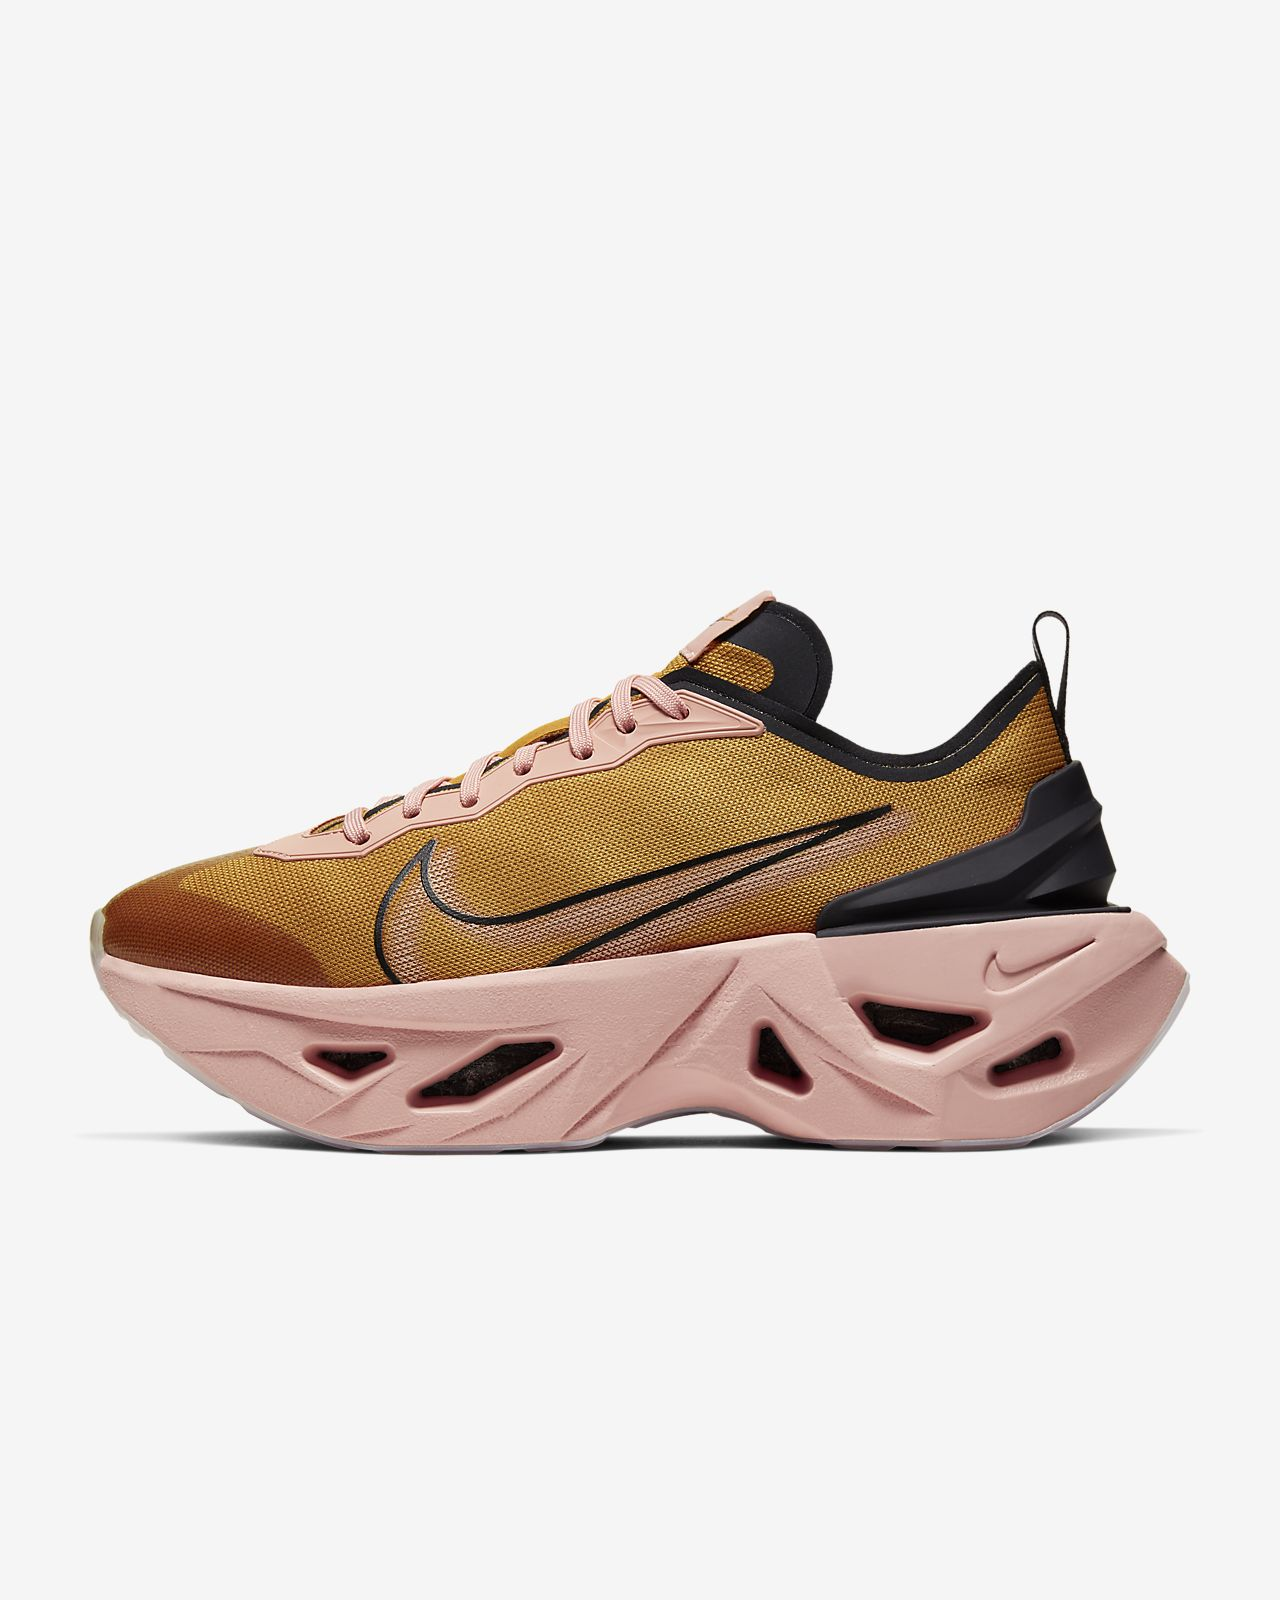 Nike clothing discount womens dress shoes website,chunky